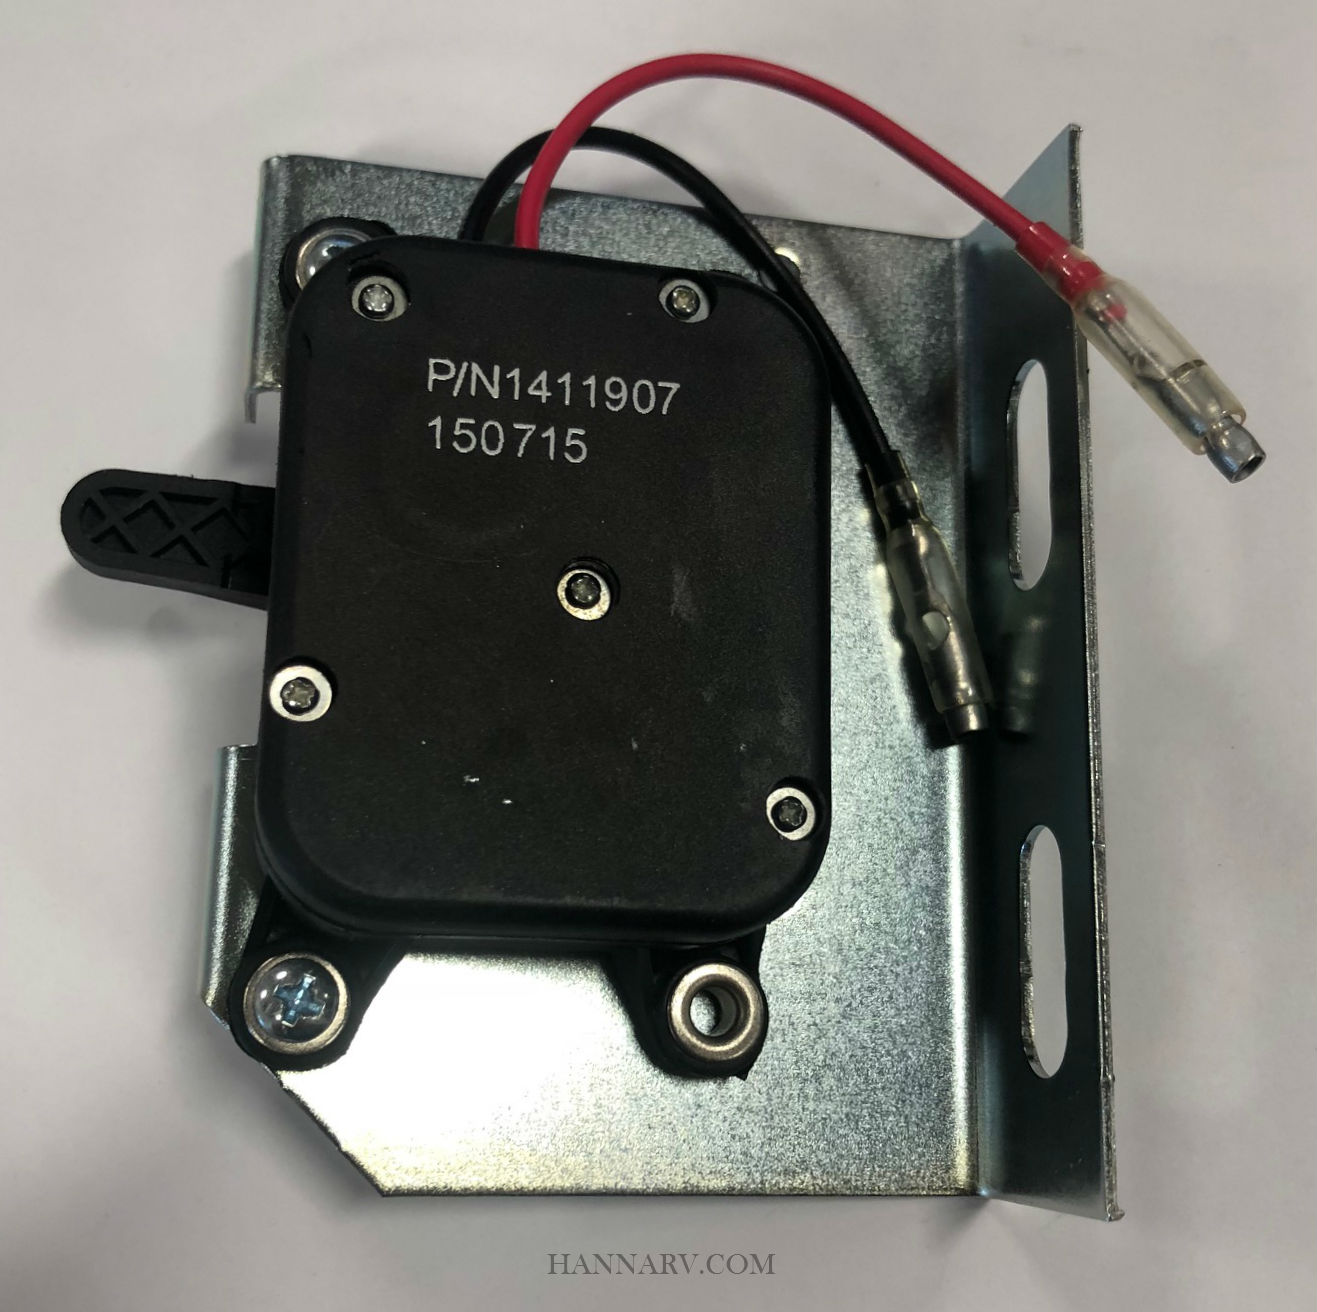 Buyers 1410713 Electric Throttle With Brackets For Briggs Stratton Salt Spreader Wiring Diagram Spreaders Gas Engines